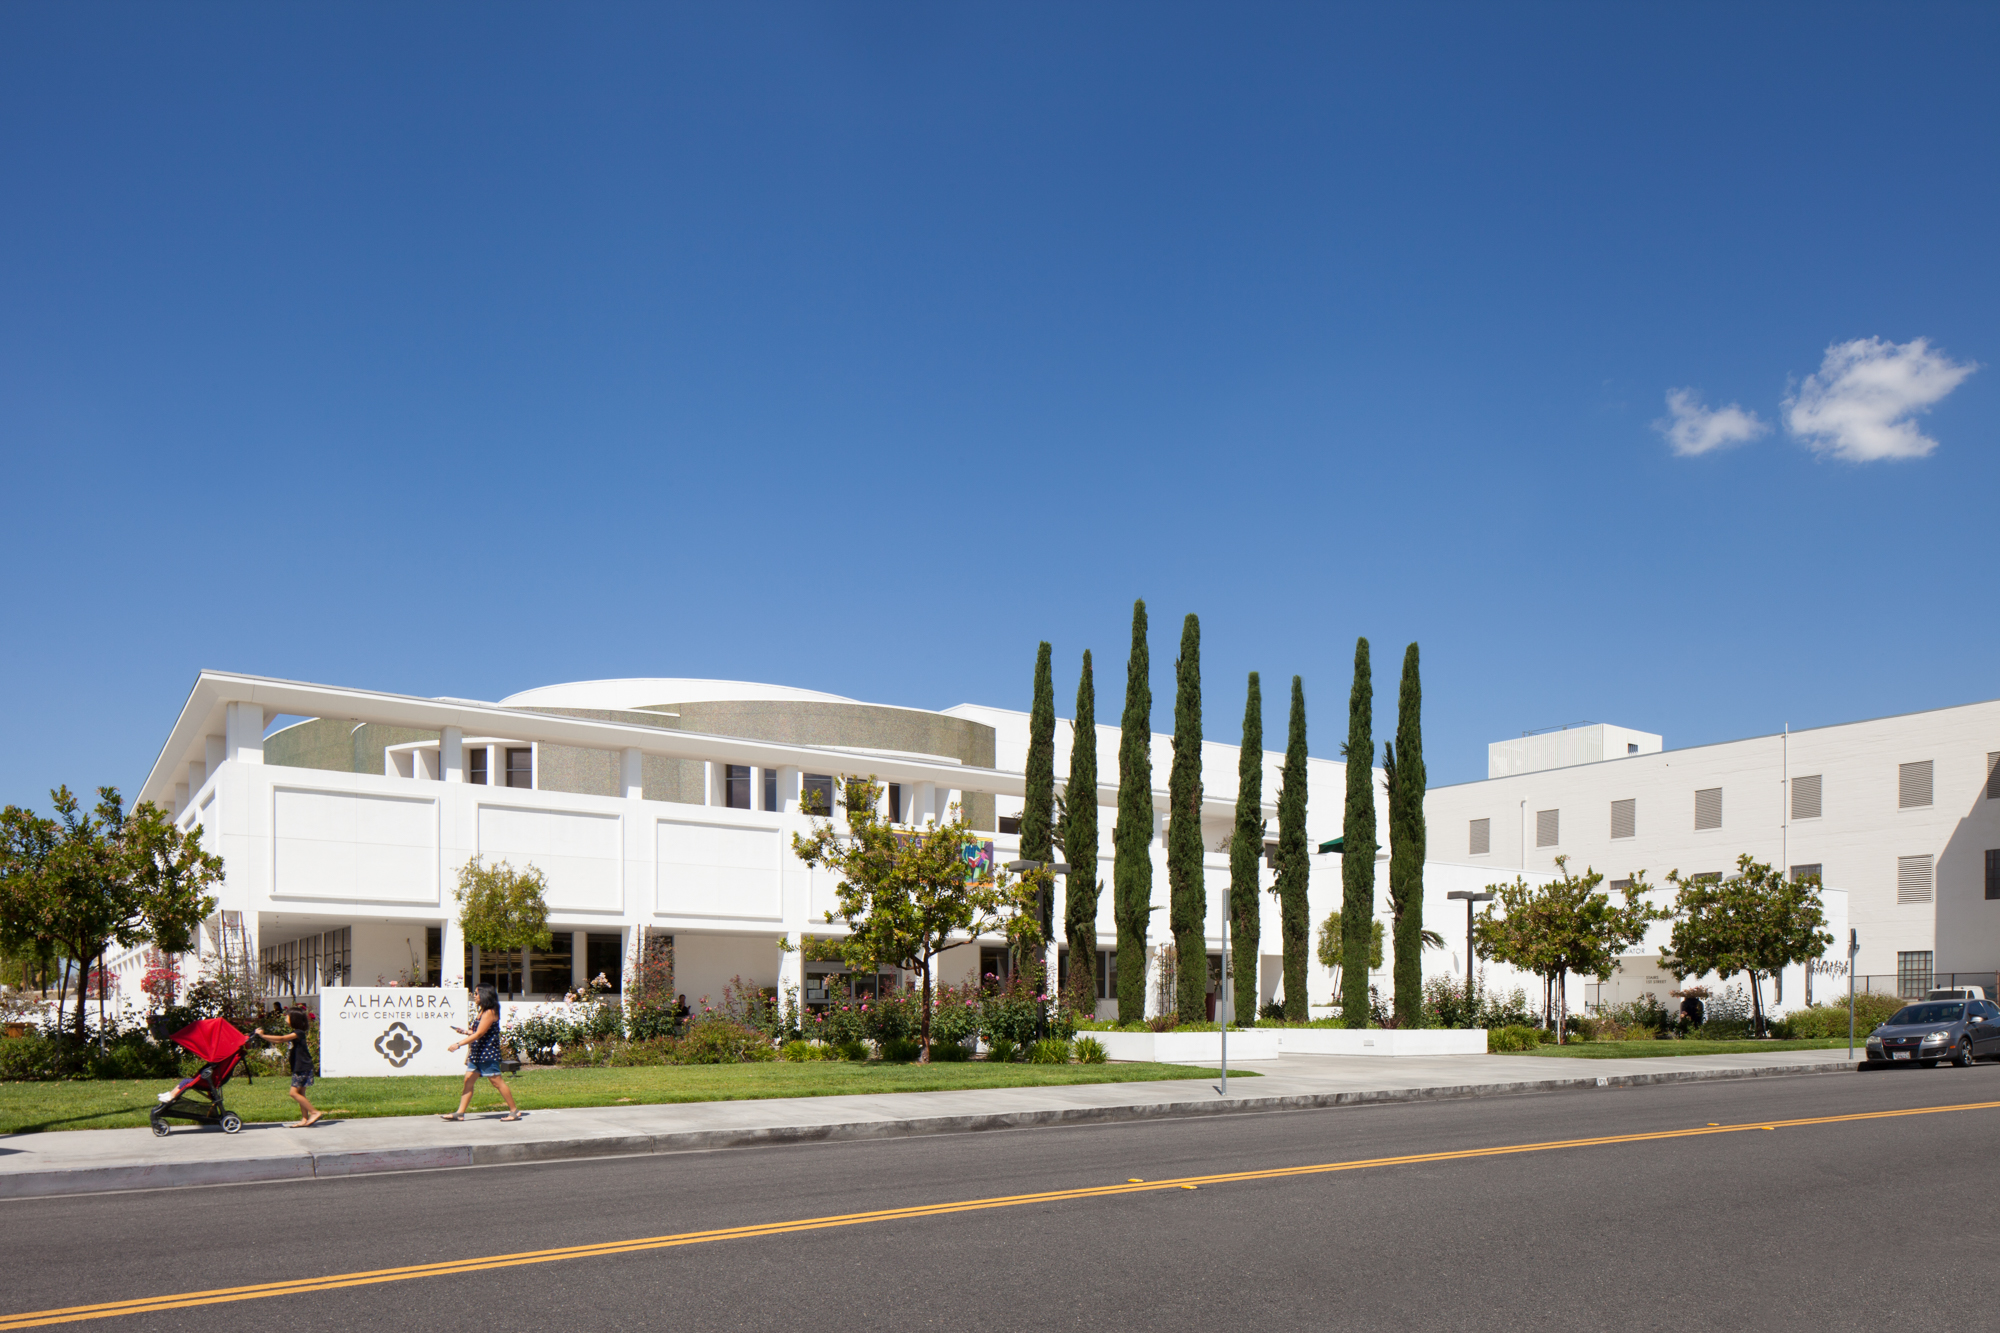 Photo of exterior of Alhambra Civic Center Library